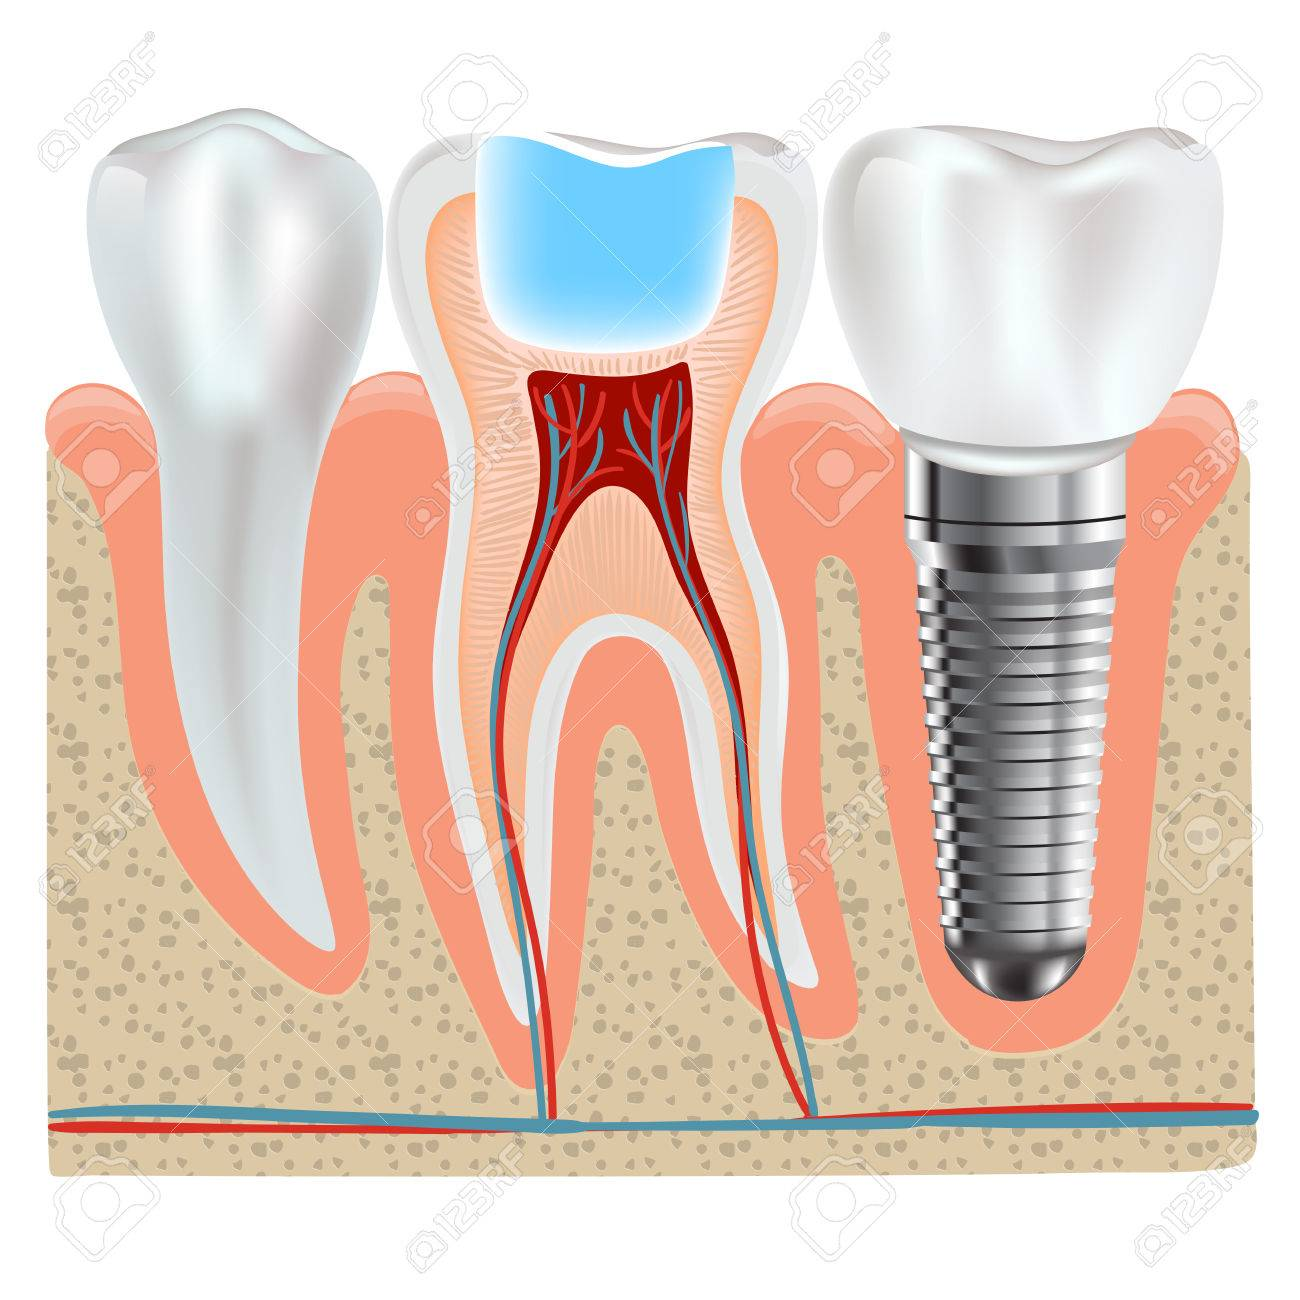 Dental Implant And Real Tooth Anatomy Closeup Royalty Free Cliparts ...